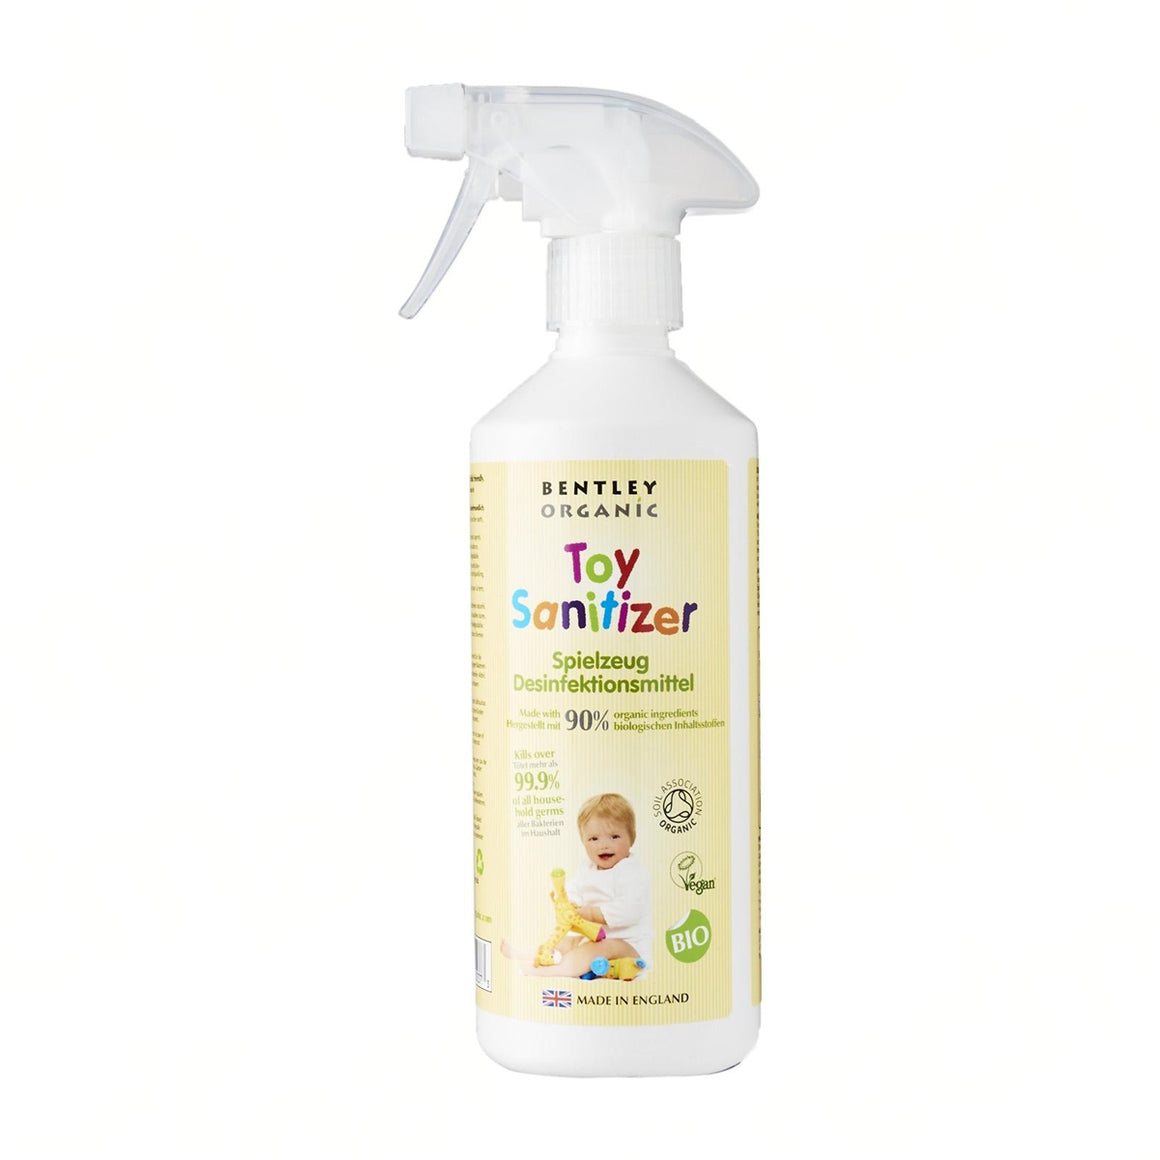 Bentley Organic : Toy Sanitiser